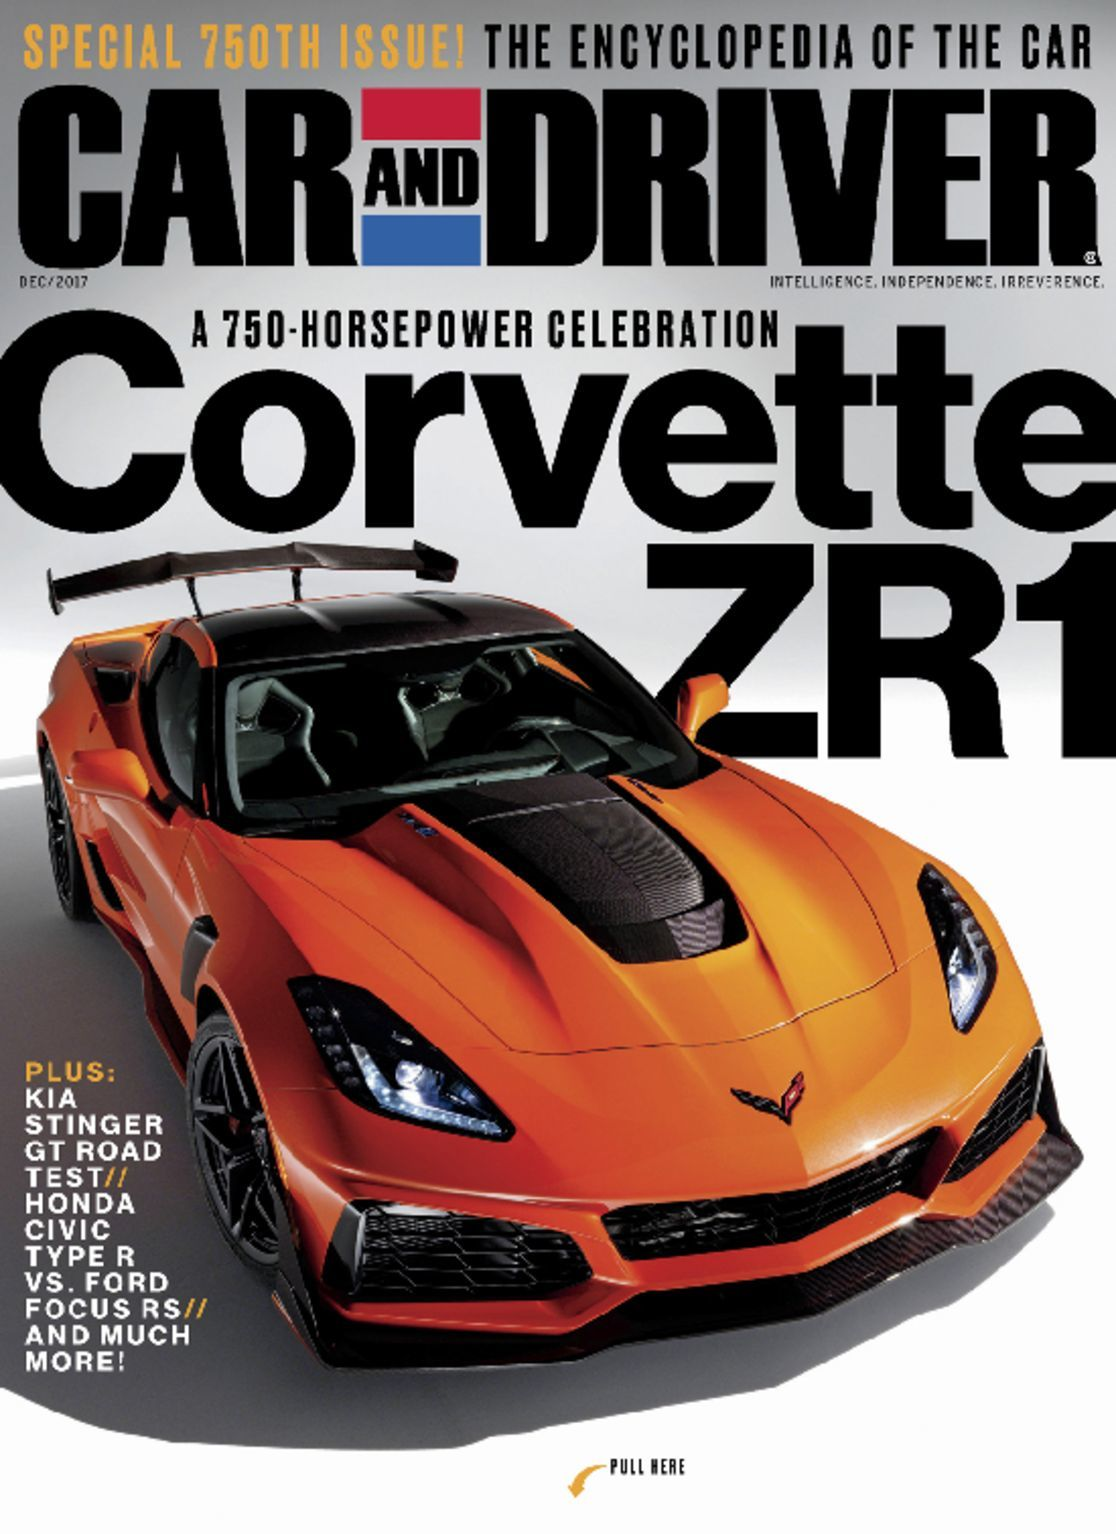 Car and Driver Magazine  Intelligence Independence